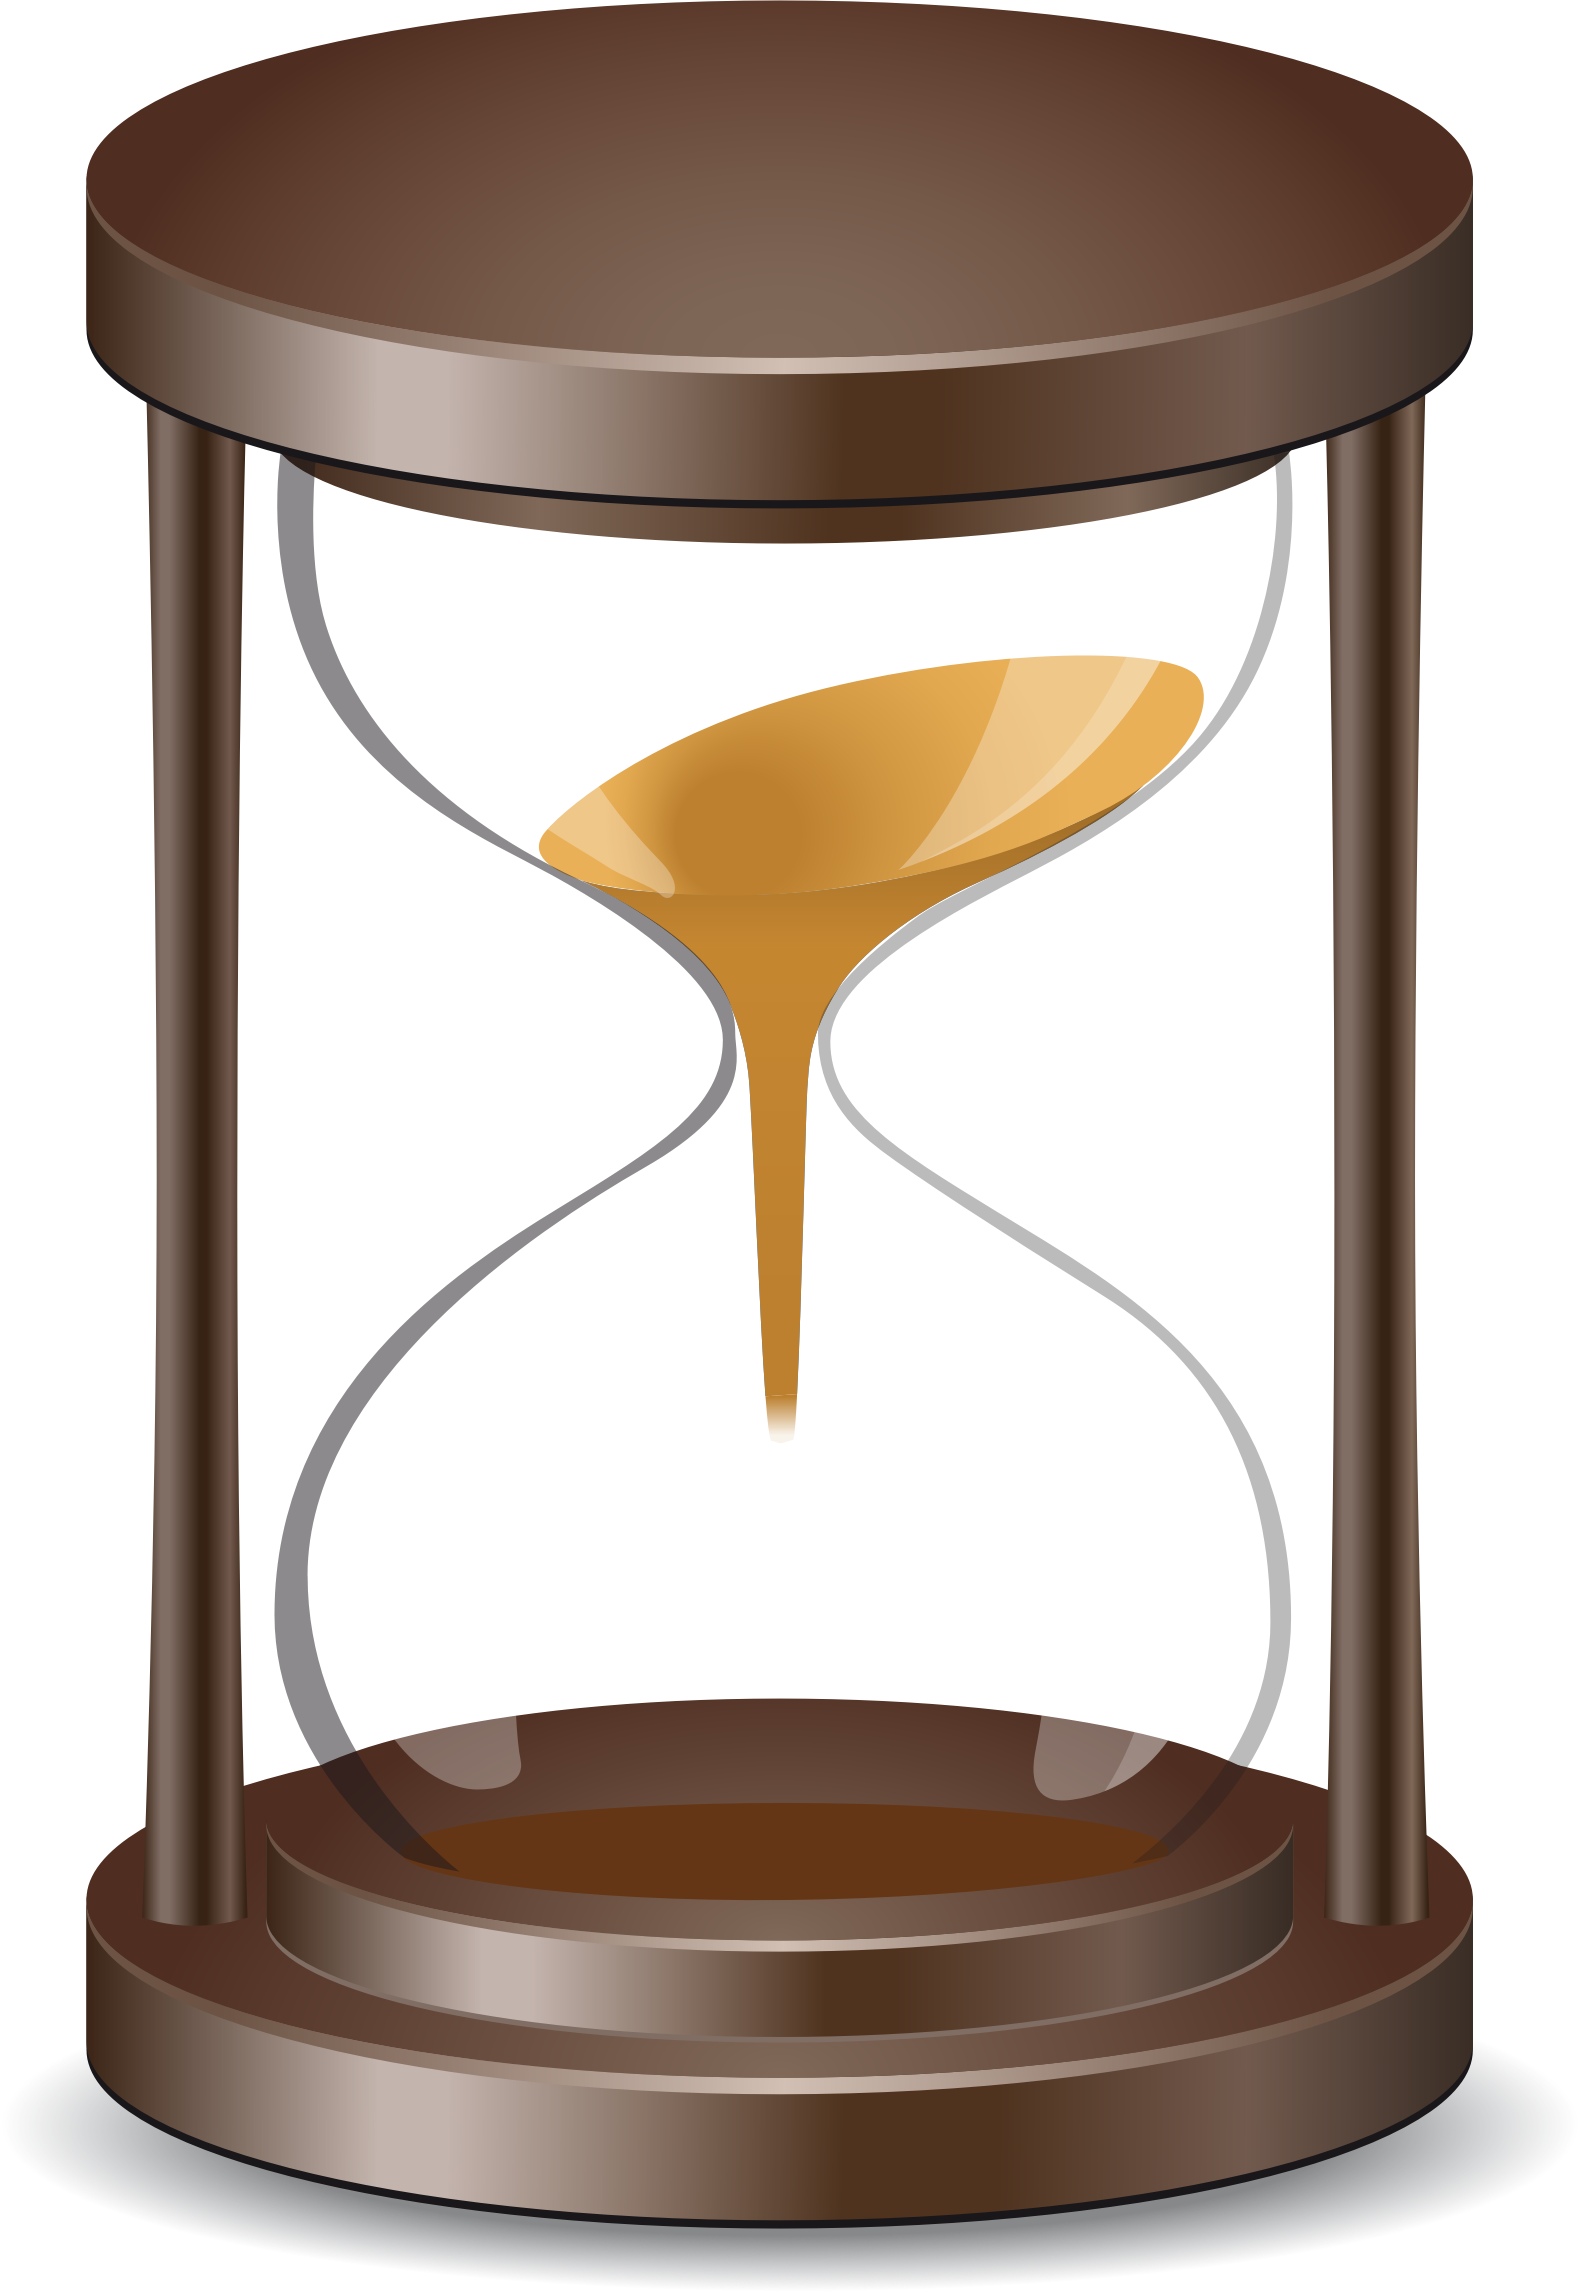 clipart hourglass rh openclipart org hourglass clipart png hourglass clipart png